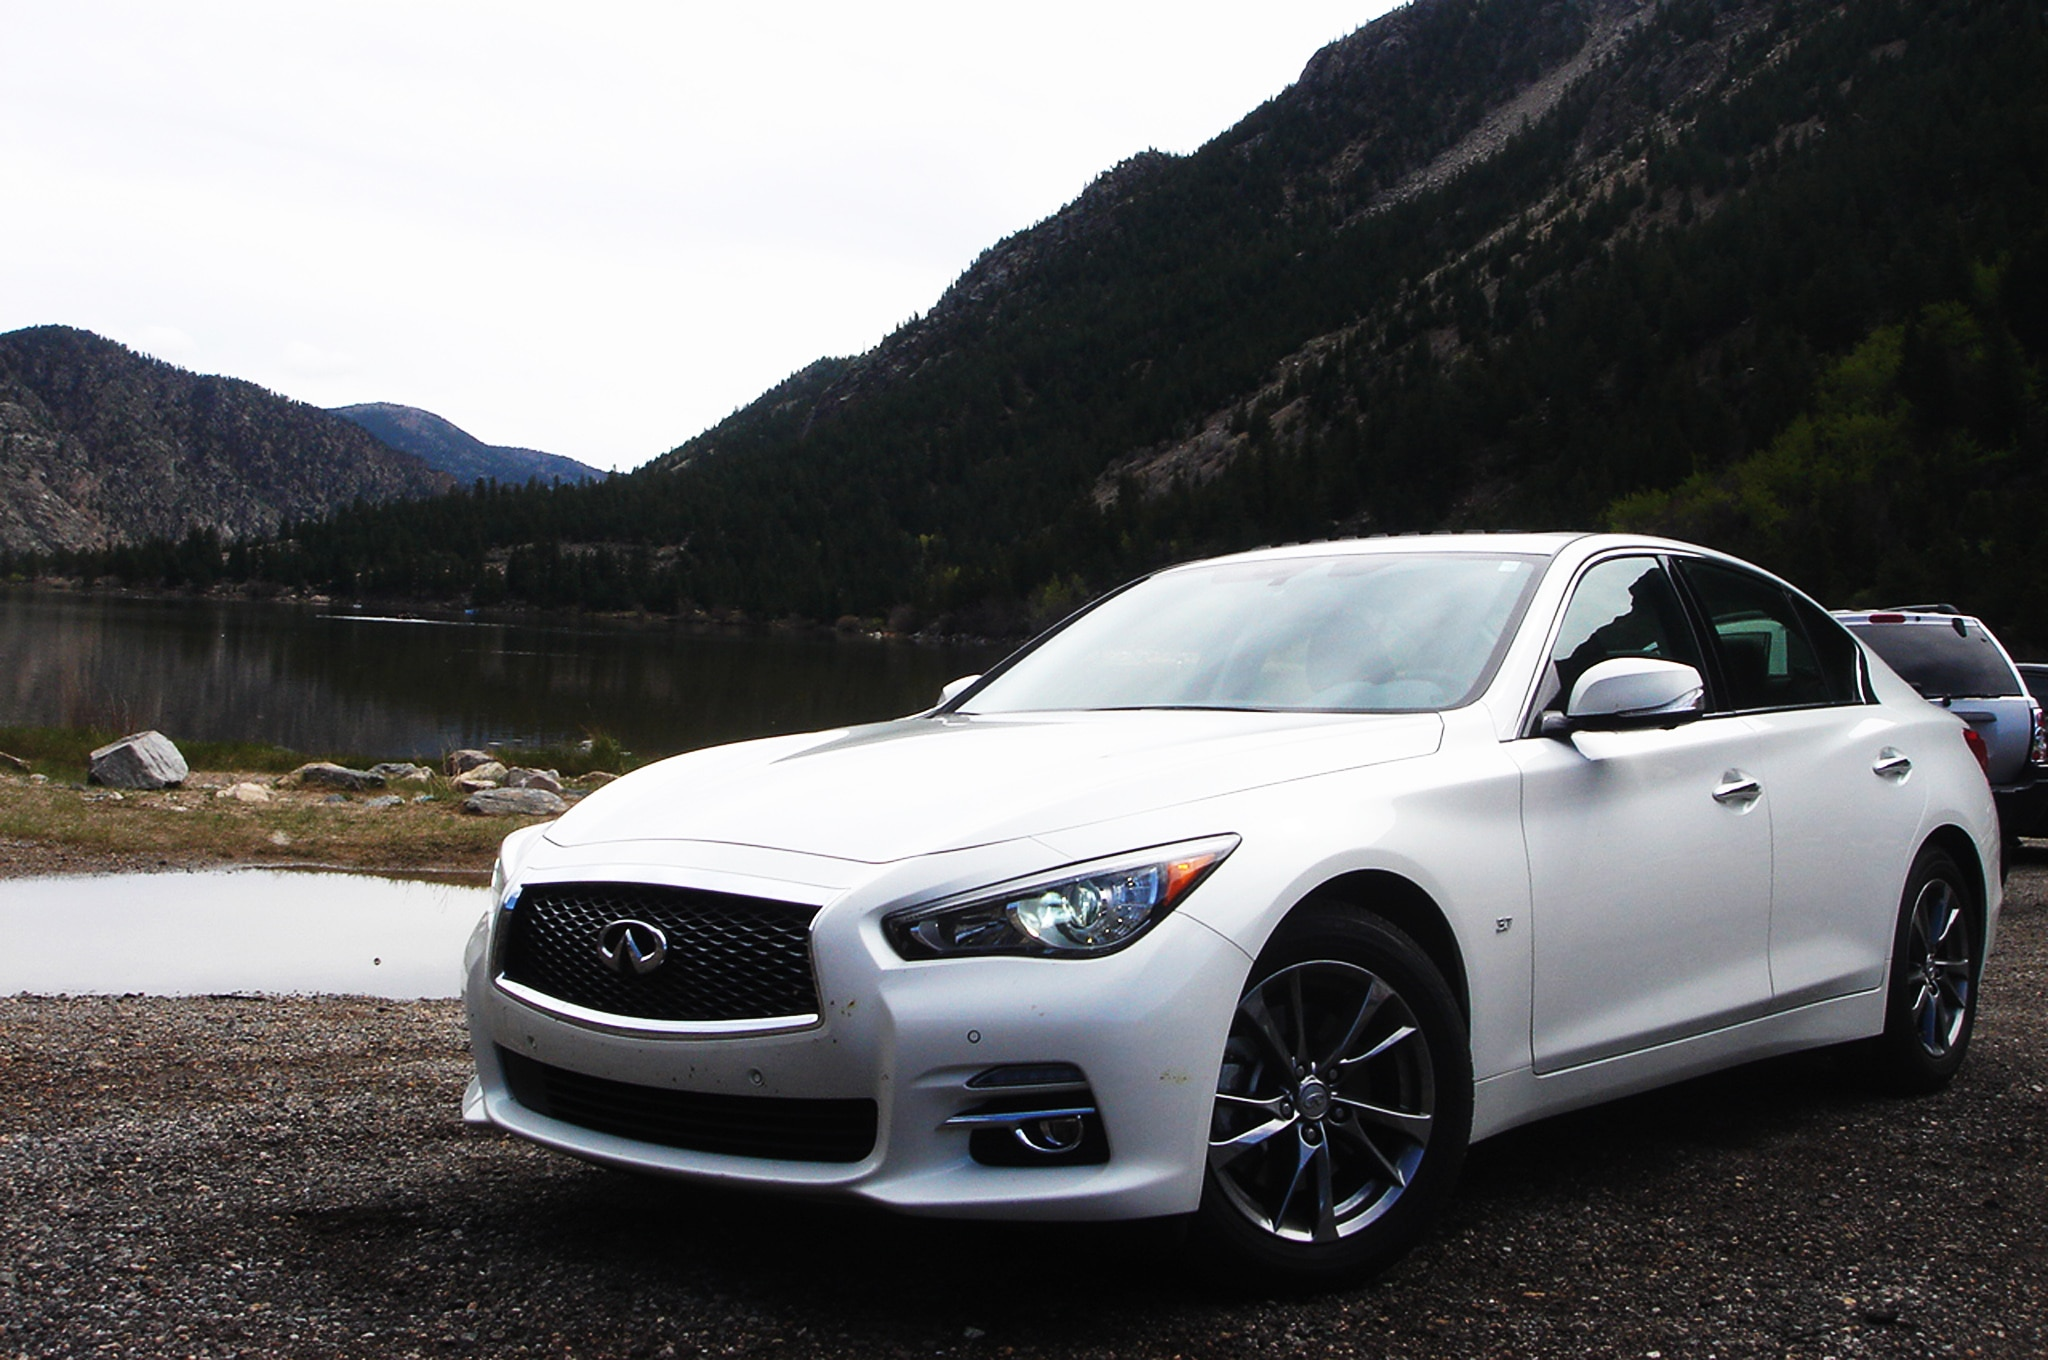 2014 infiniti q50 3 7 awd premium four seasons wrap up. Black Bedroom Furniture Sets. Home Design Ideas